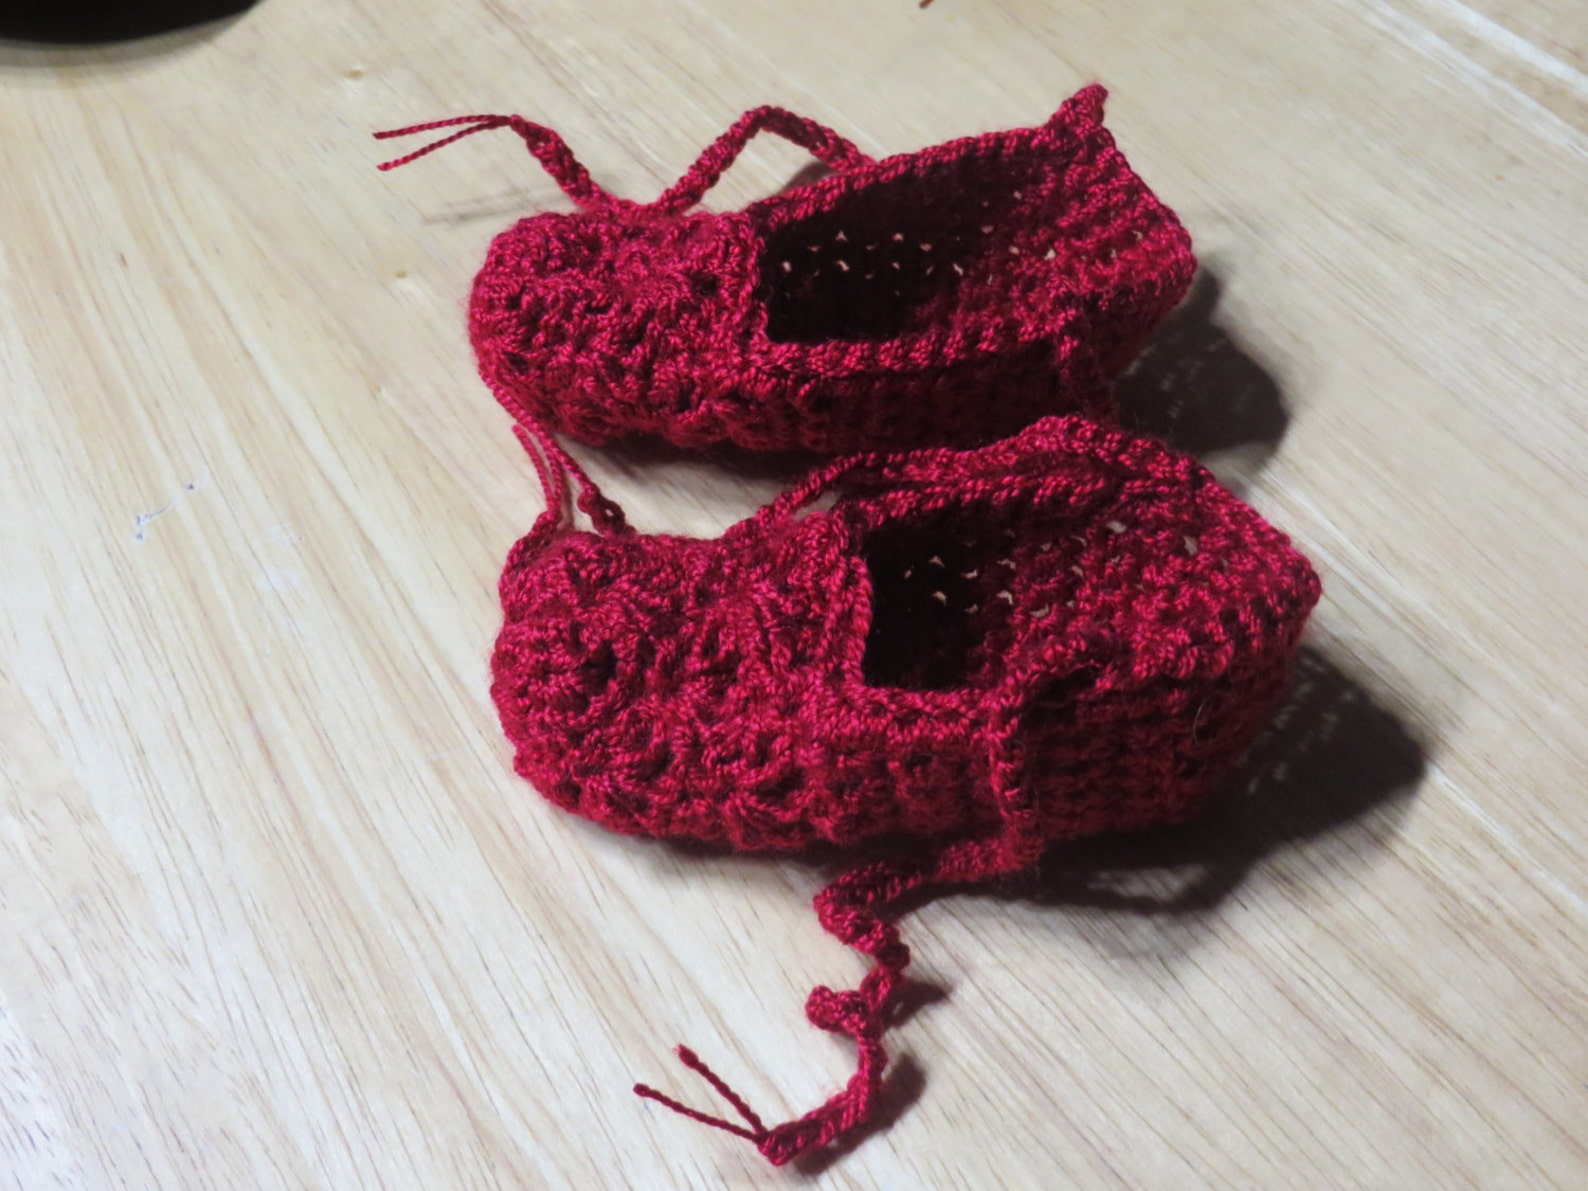 handmade crochet baby ballet slippers, booties, newborn - 6 months old, 6-12 months old, free shipping